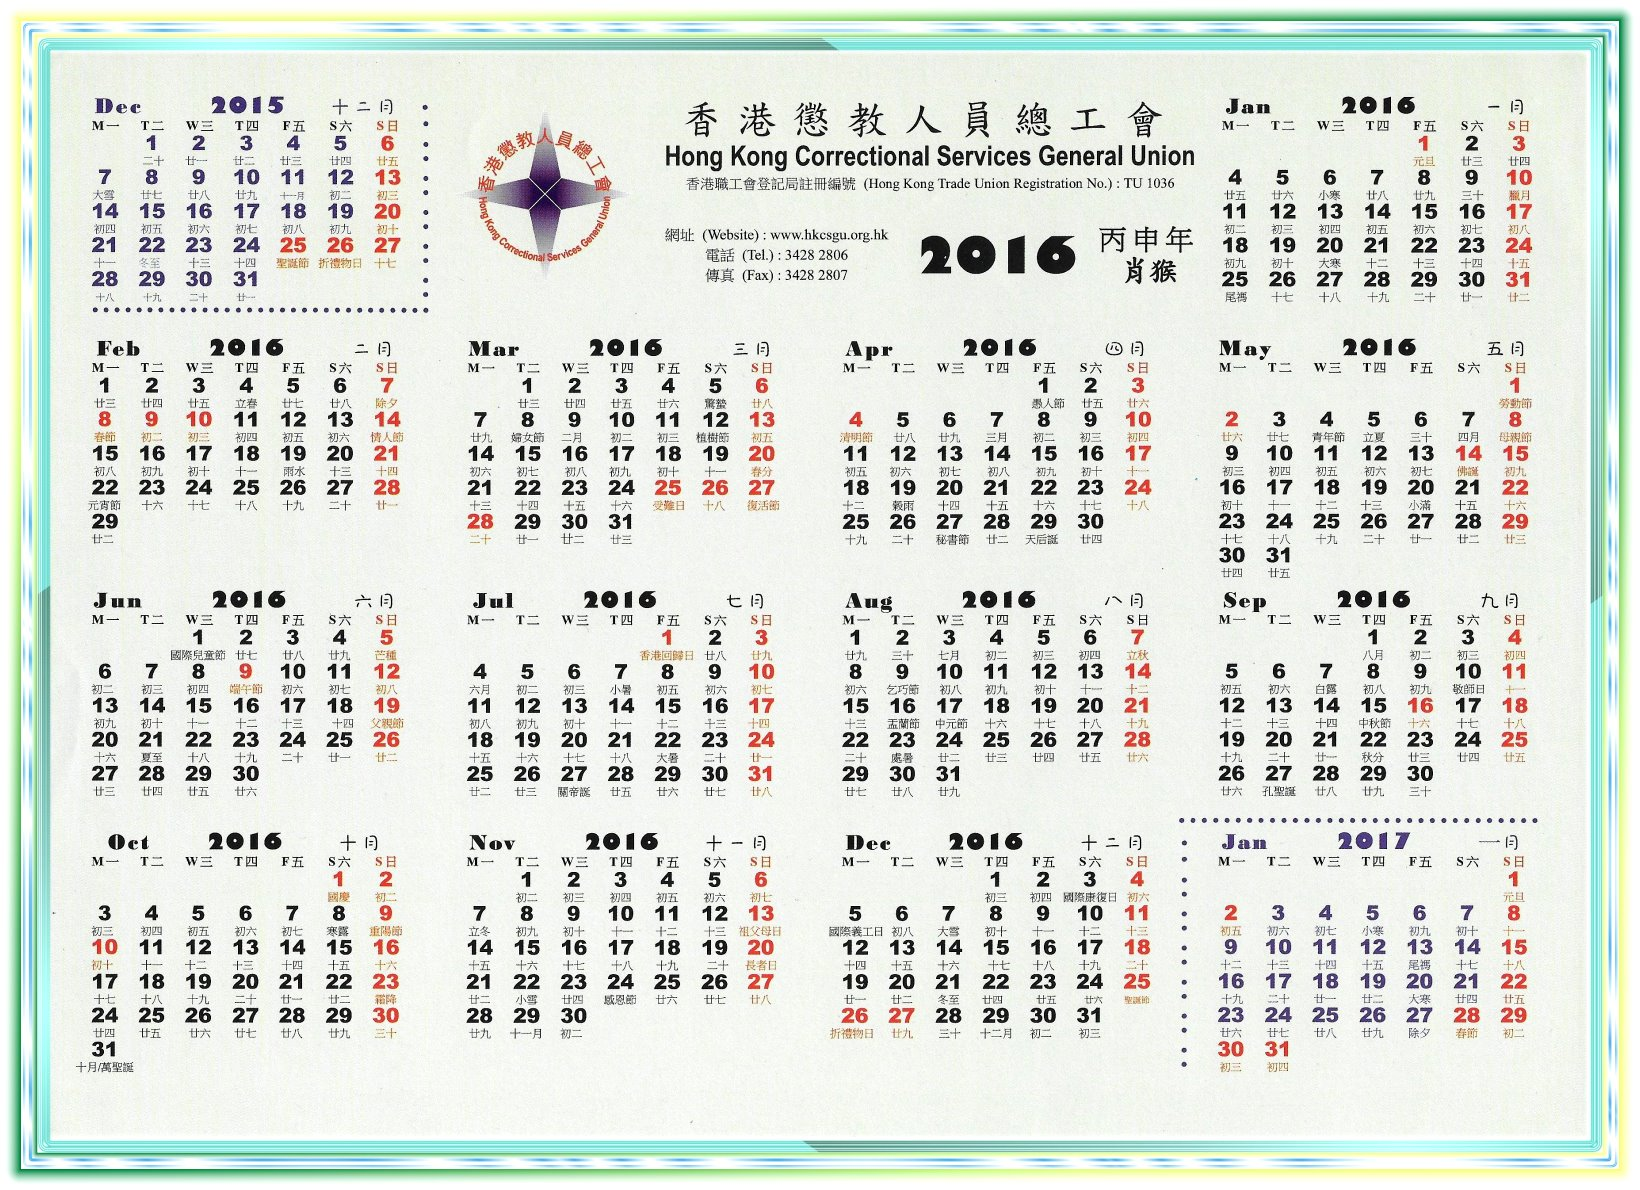 2015 Calendar Hk | Search Results | Calendar 2015